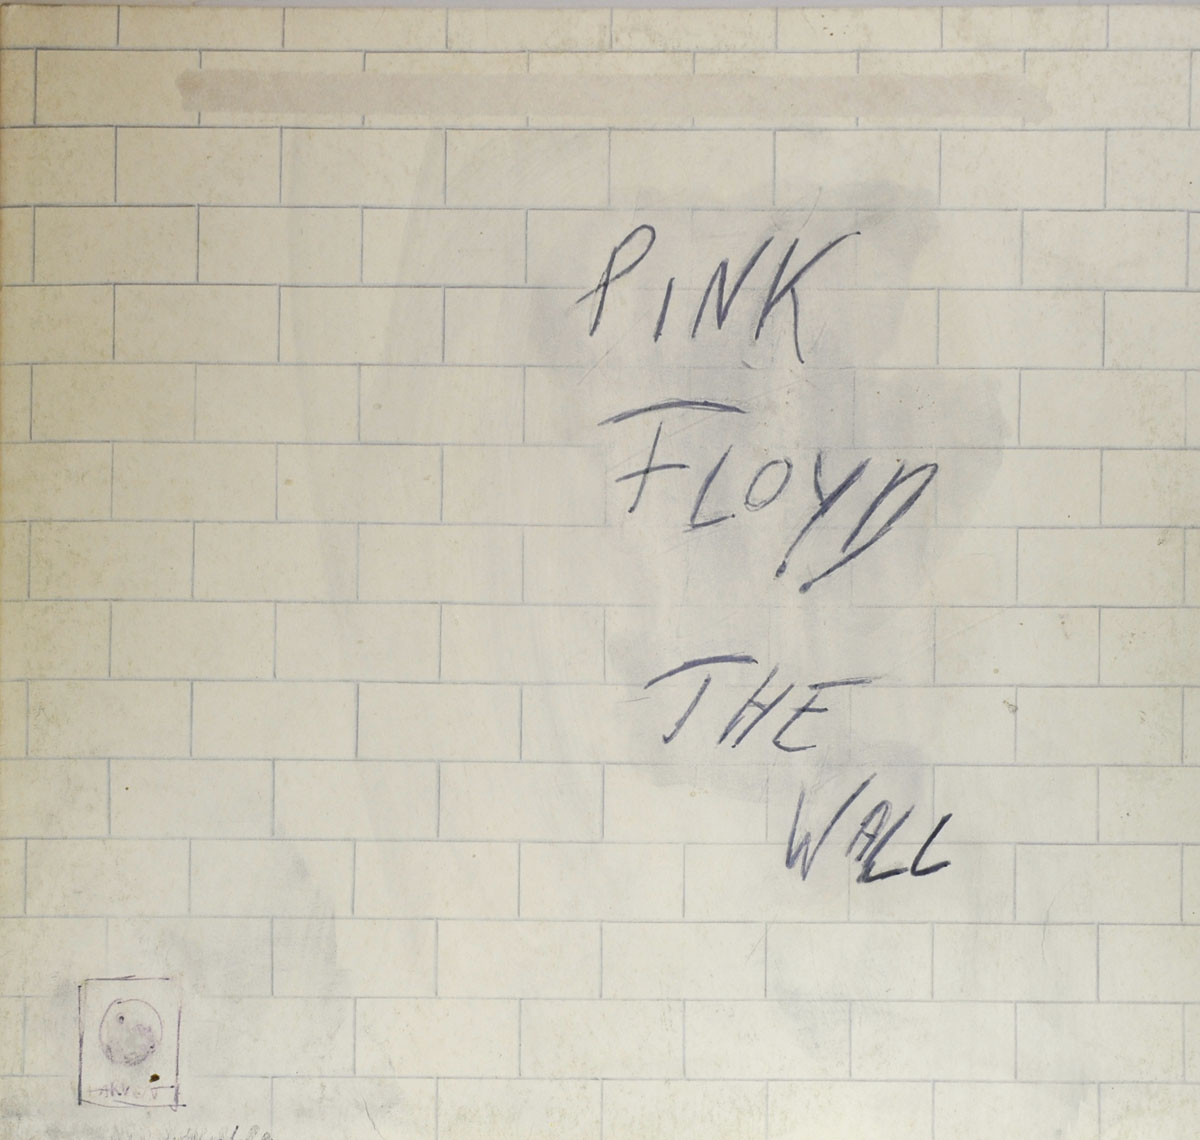 High Resolution Photo #1 PINK FLOYD Wall France